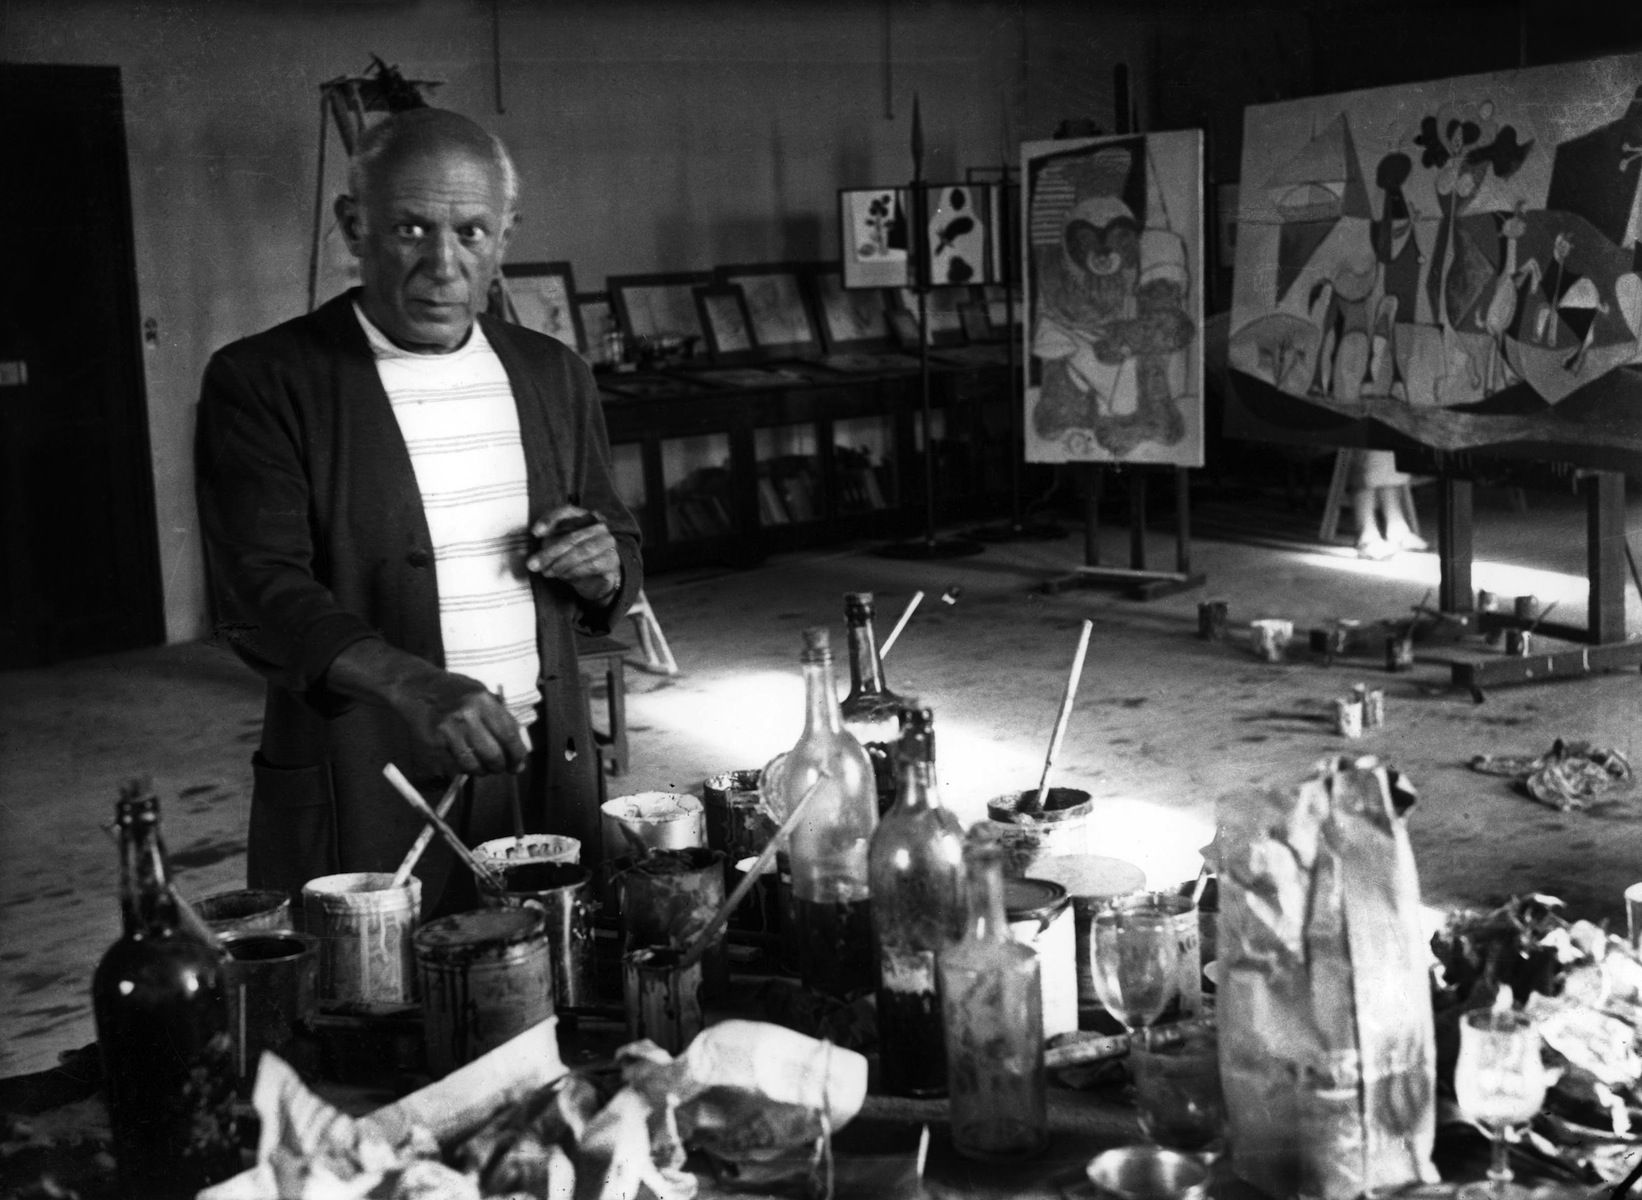 Pablo Picasso (1881-1973) dans son atelier au chateau Grimaldi a Antibes, ete 1946 --- Pablo Picasso in his workshop in Antibes summer 1946